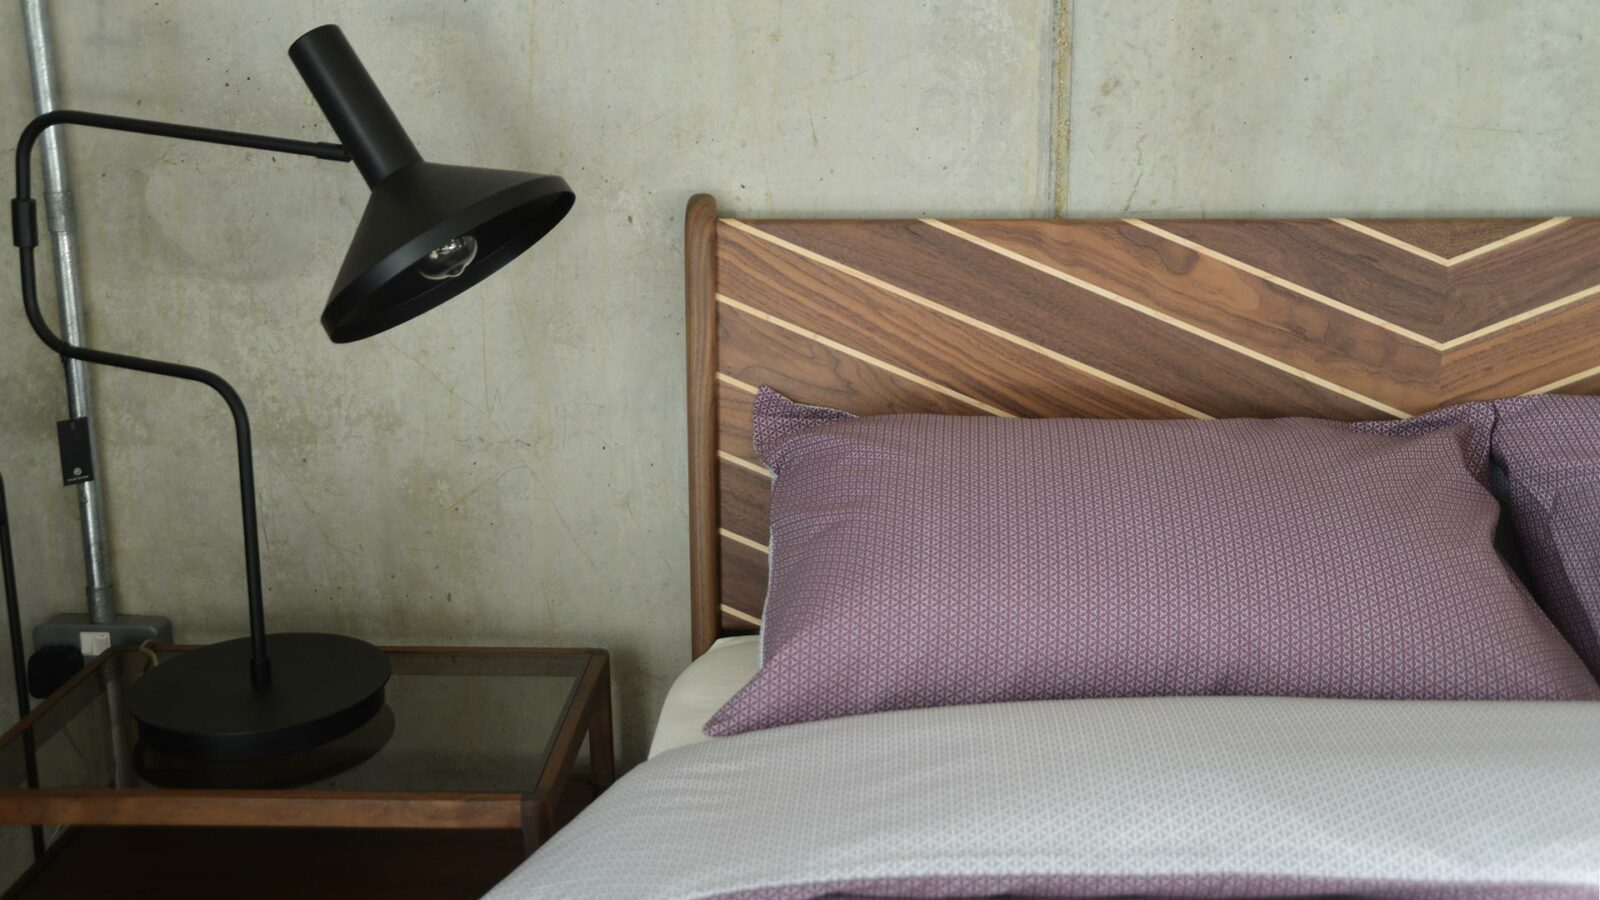 Reversible duvet set in Mauve and white with a printed pattern